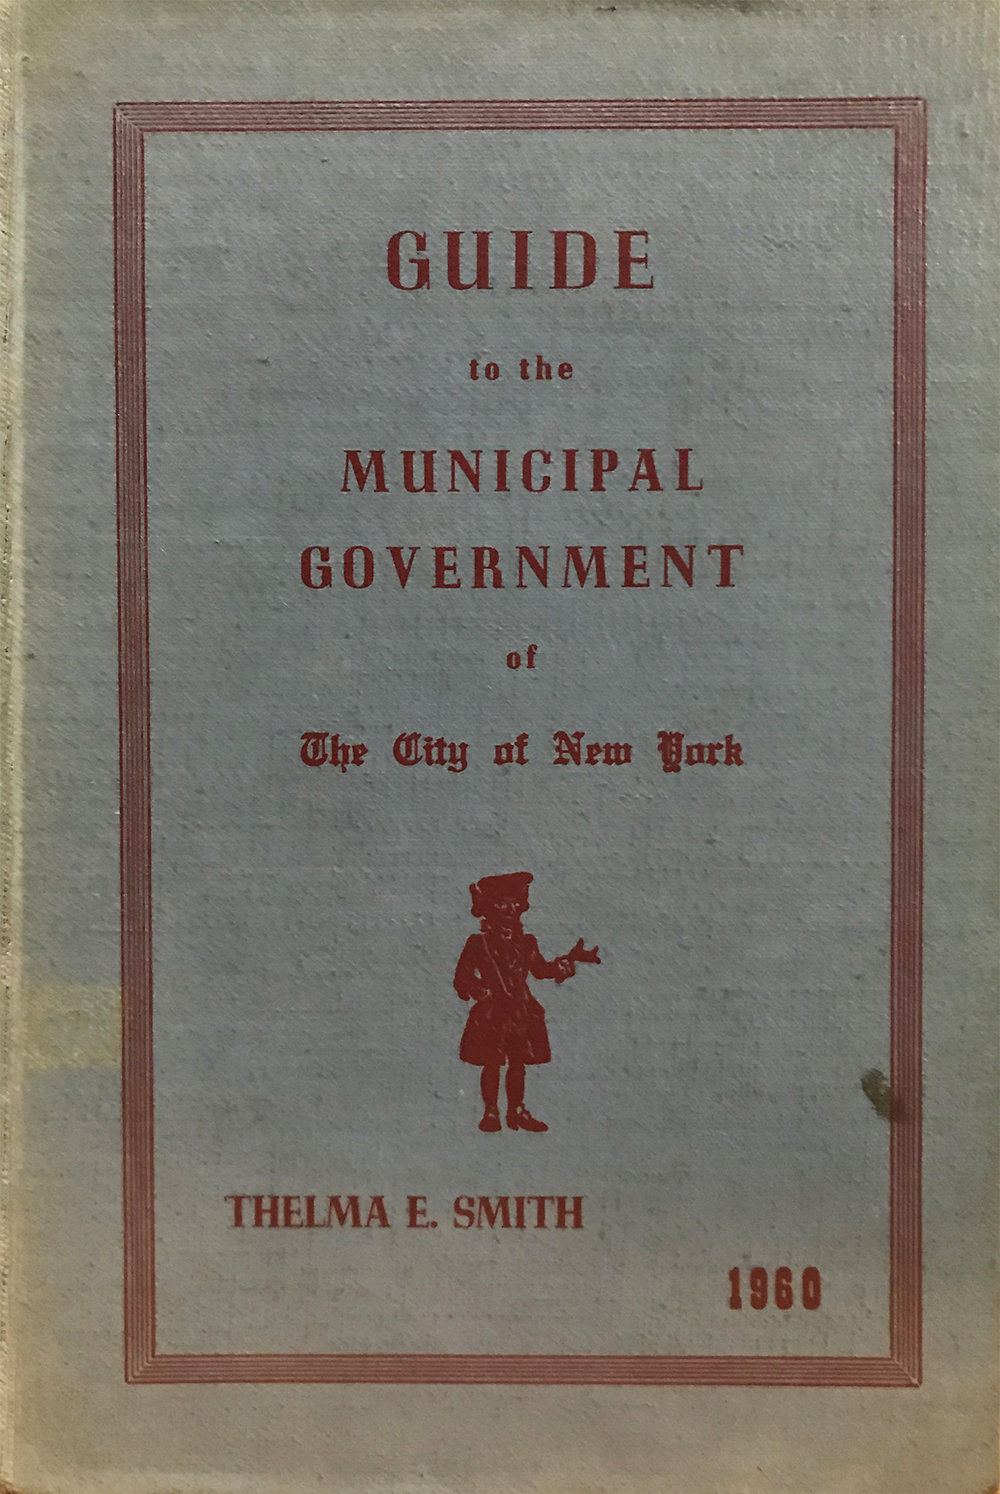 Guide to the Municipal Government of the City of New York , NYC Municipal Library.